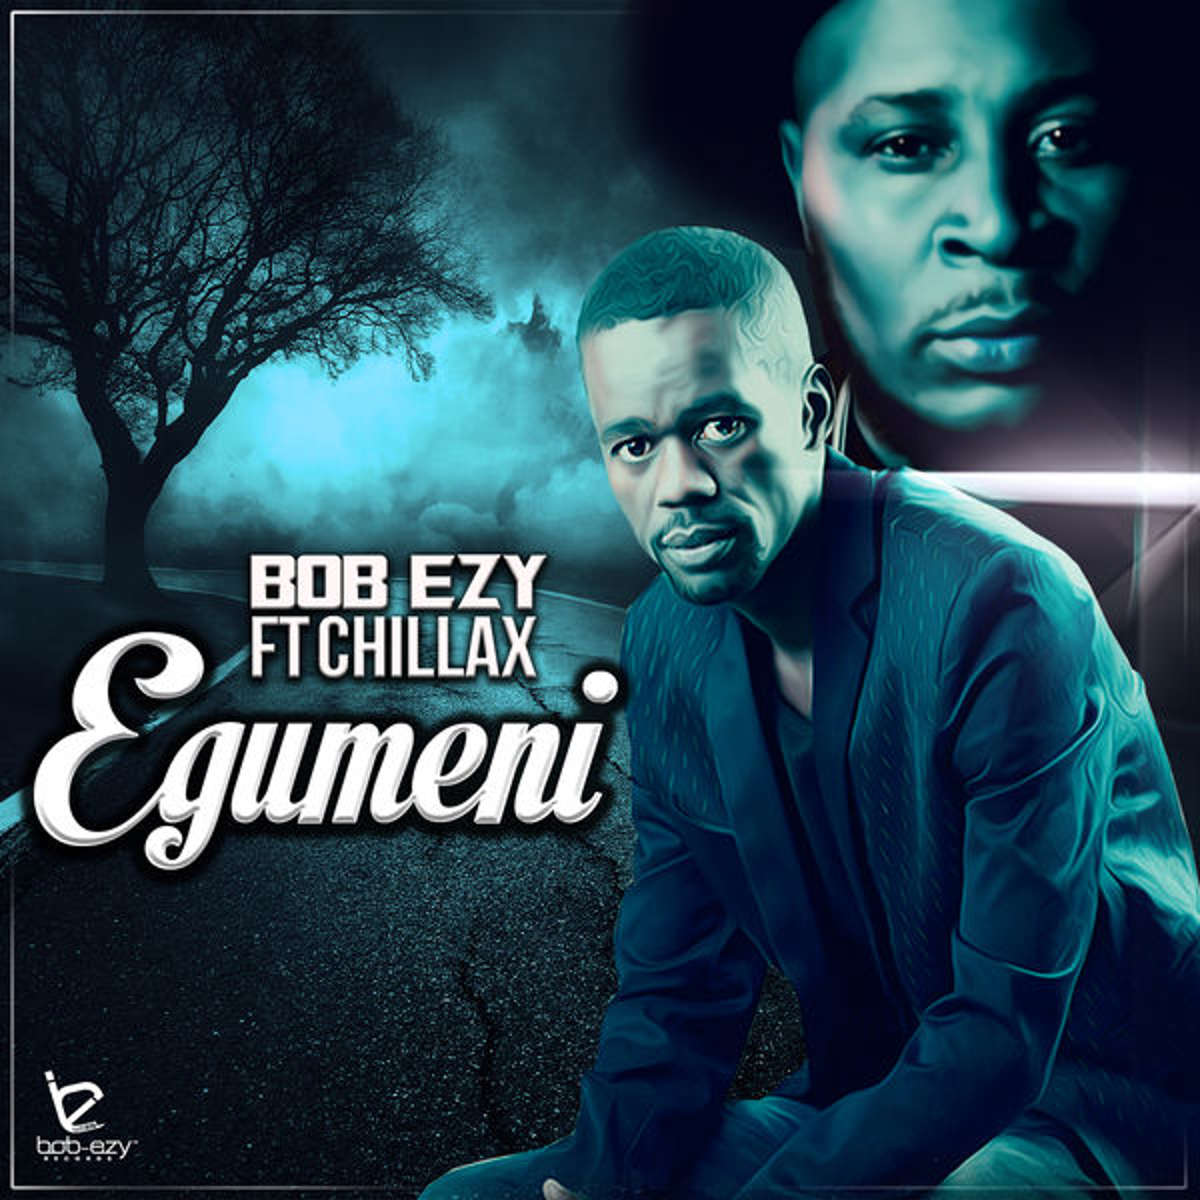 Bob Ezy - Egumeni Bhavani (feat. Mr Chillax)